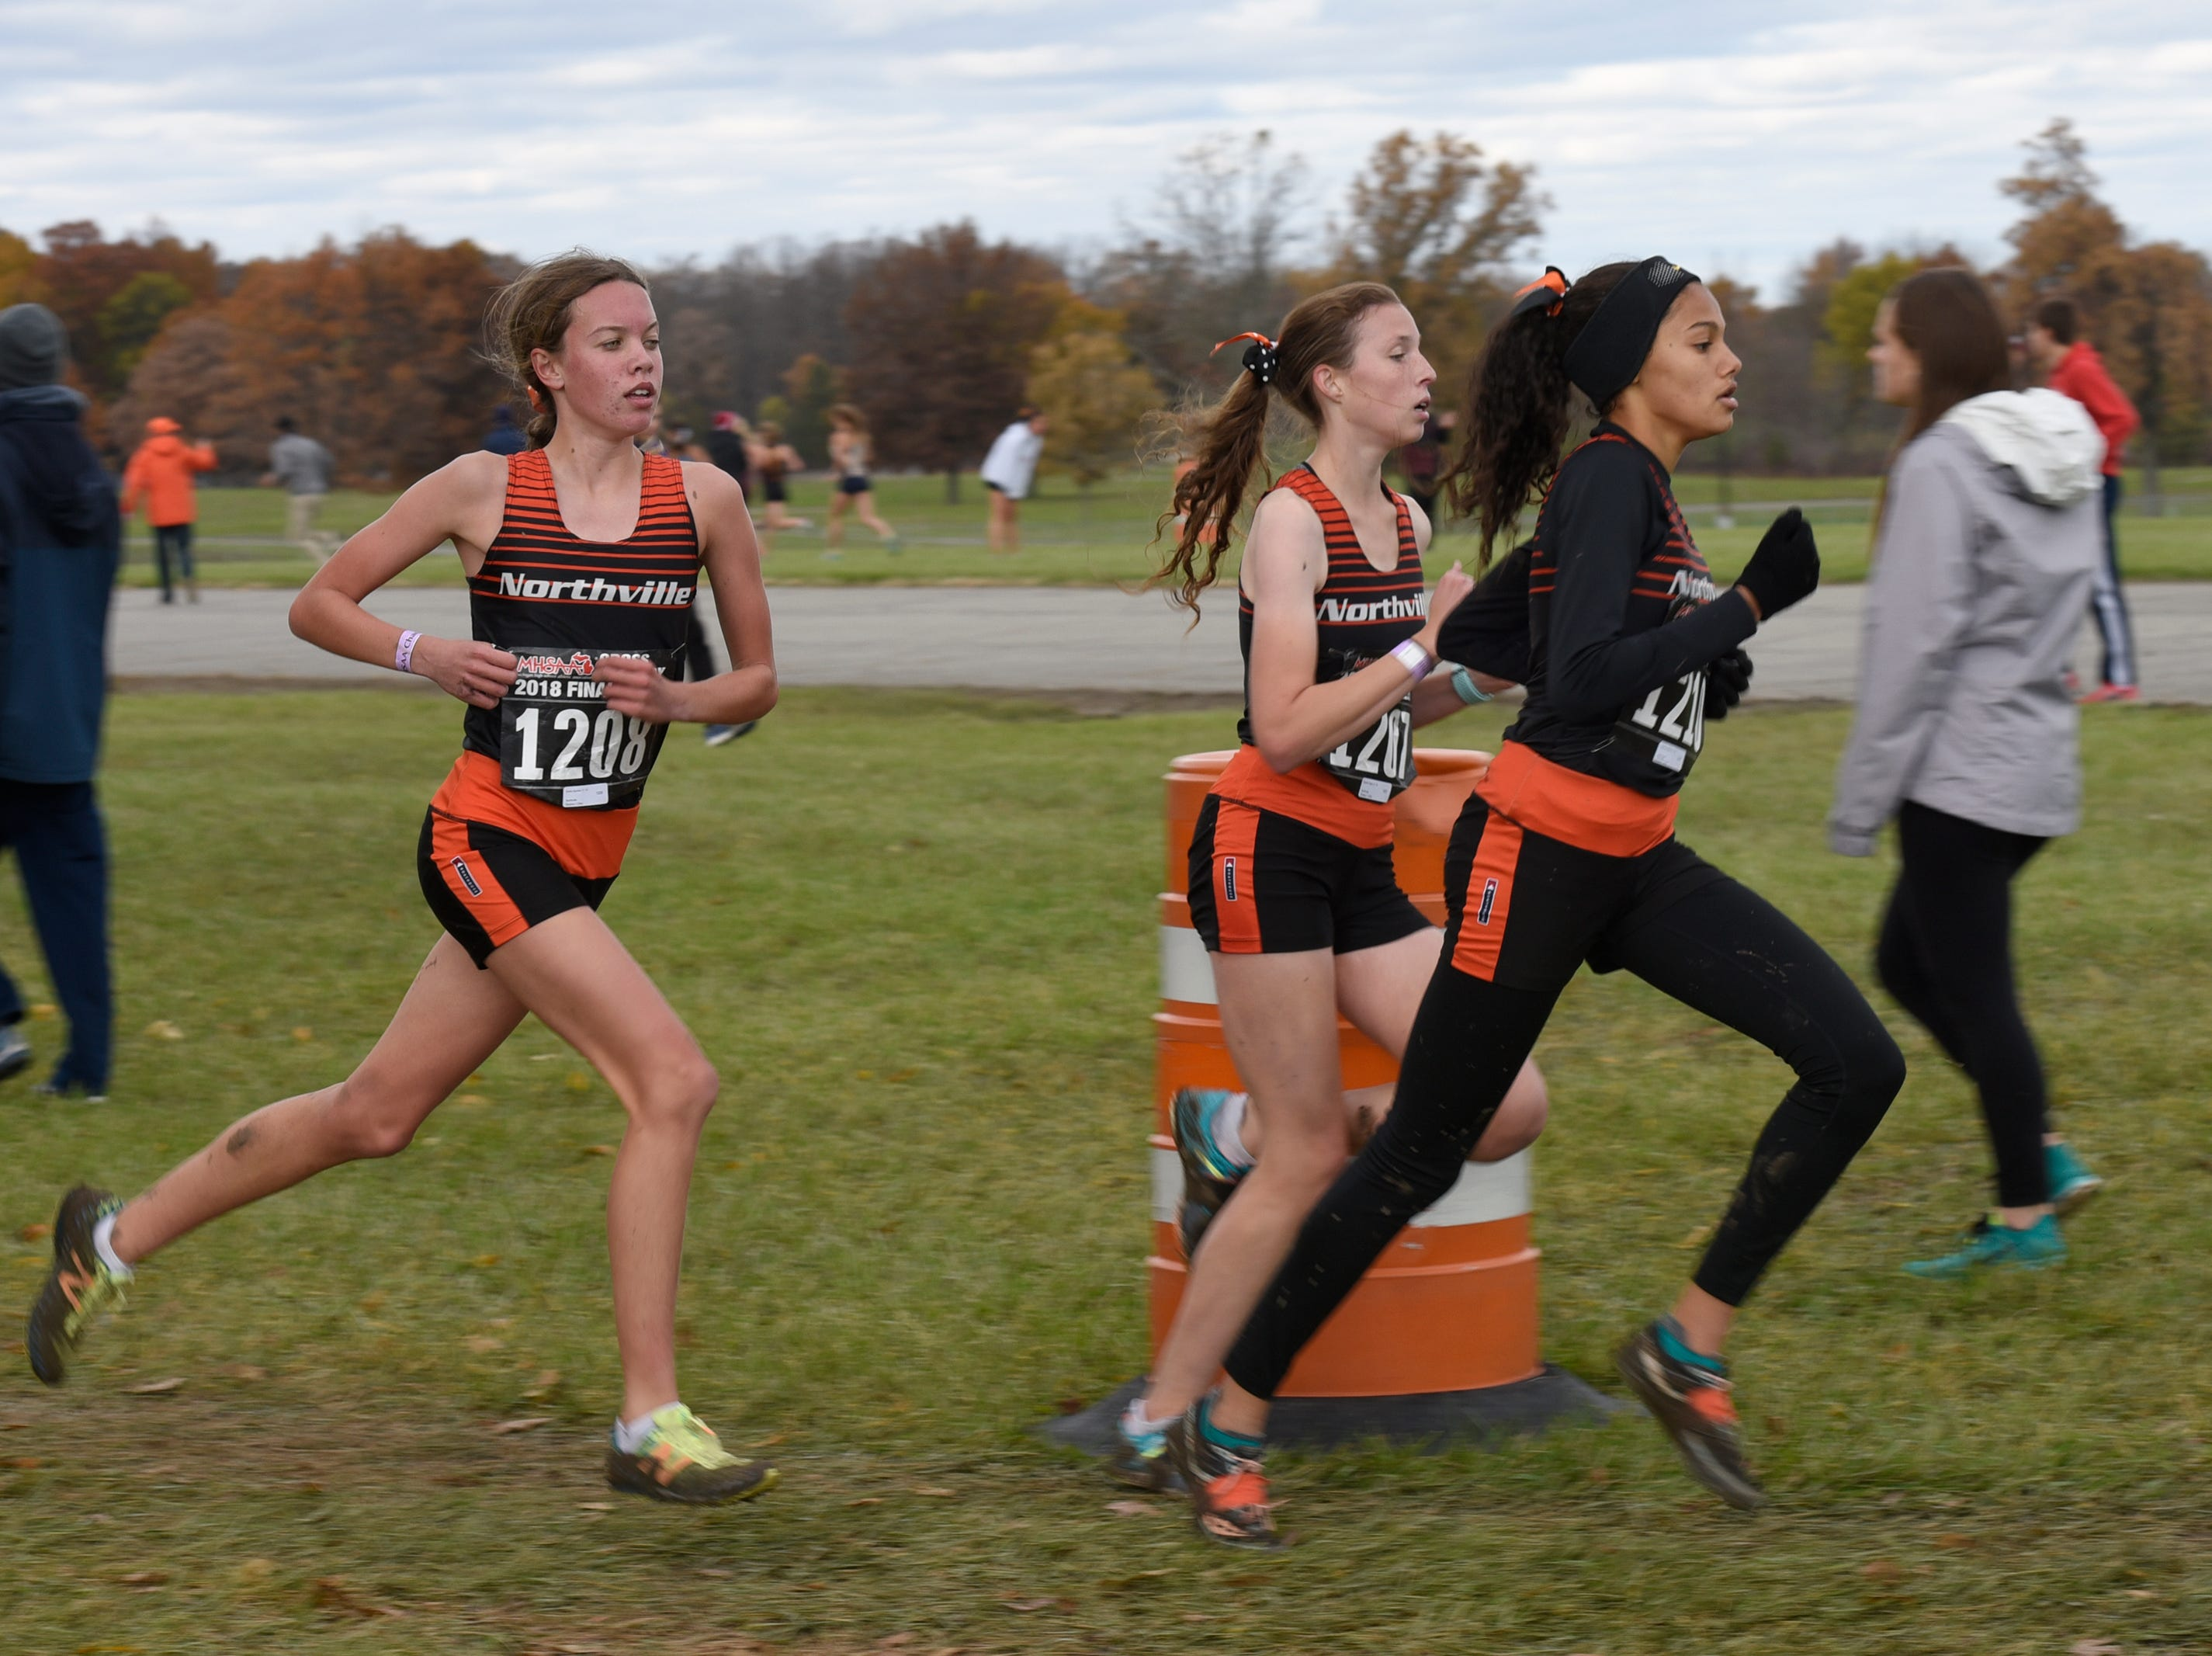 Northville's Emily Gordon, Nicole Cybul, Yasmine Mansi durng the Division 1 2018 cross country finals at Michigan International Speedway.